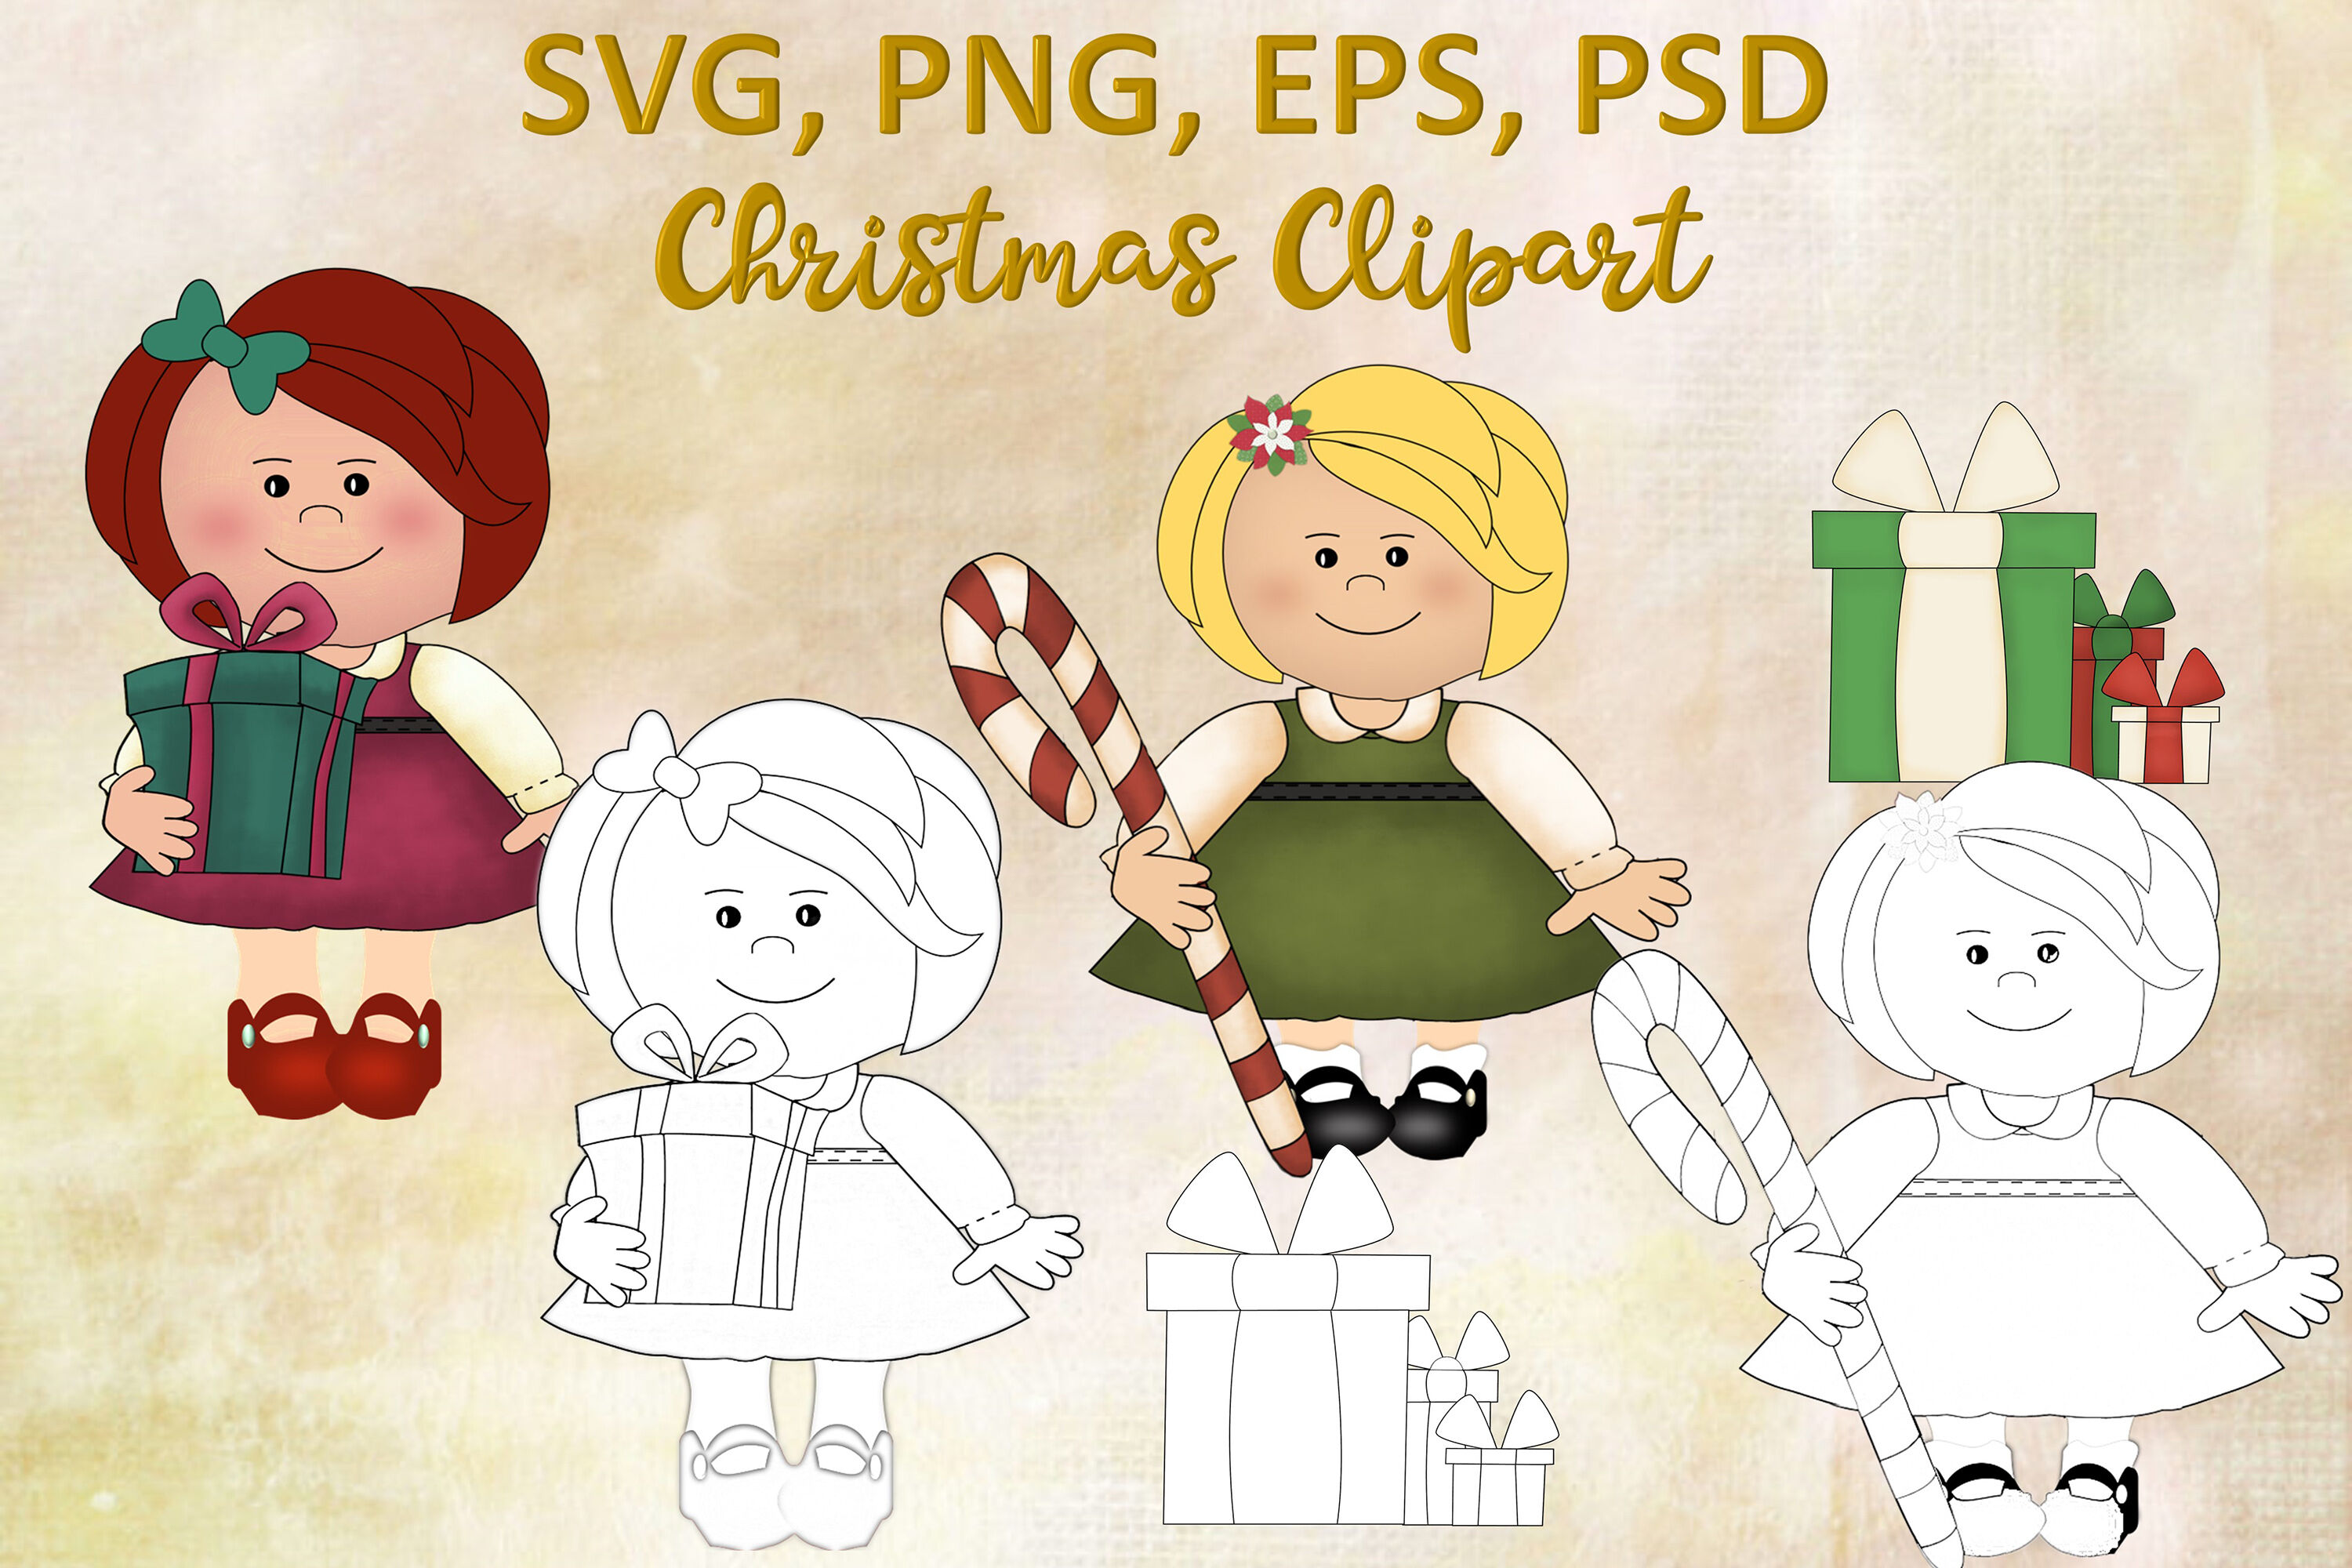 Christmas Clipart And Colouring Pages Svg Psd Eps And Png By The